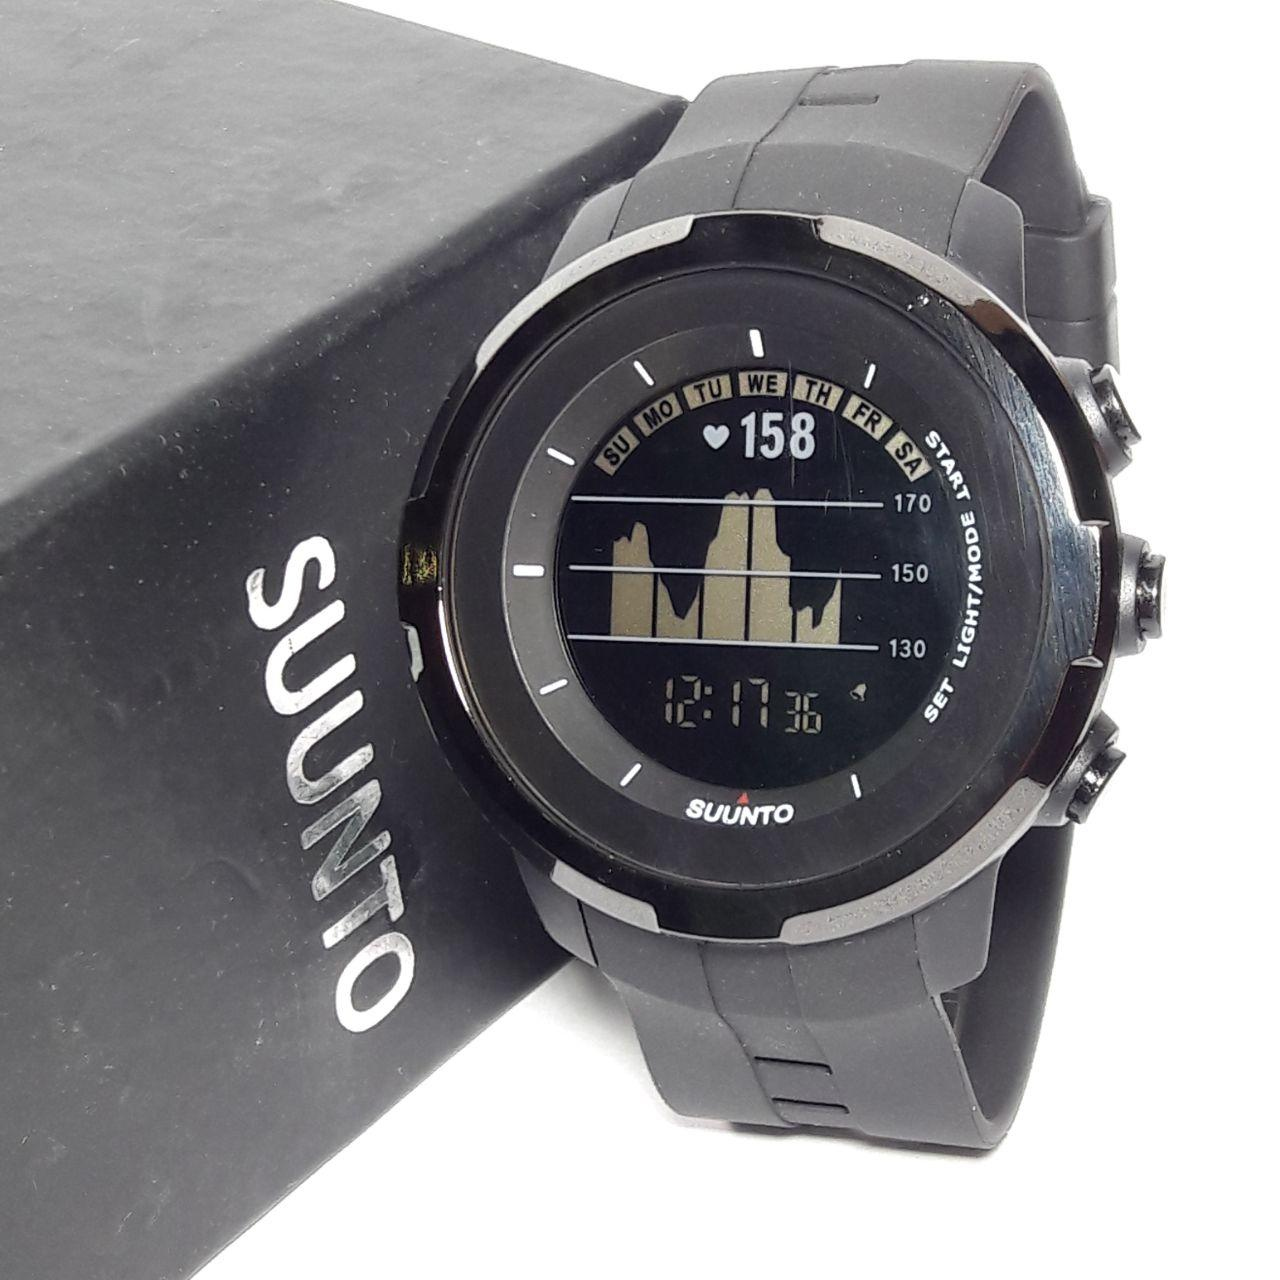 Jam tangan Pria Sunto suunto Core digital rubber black